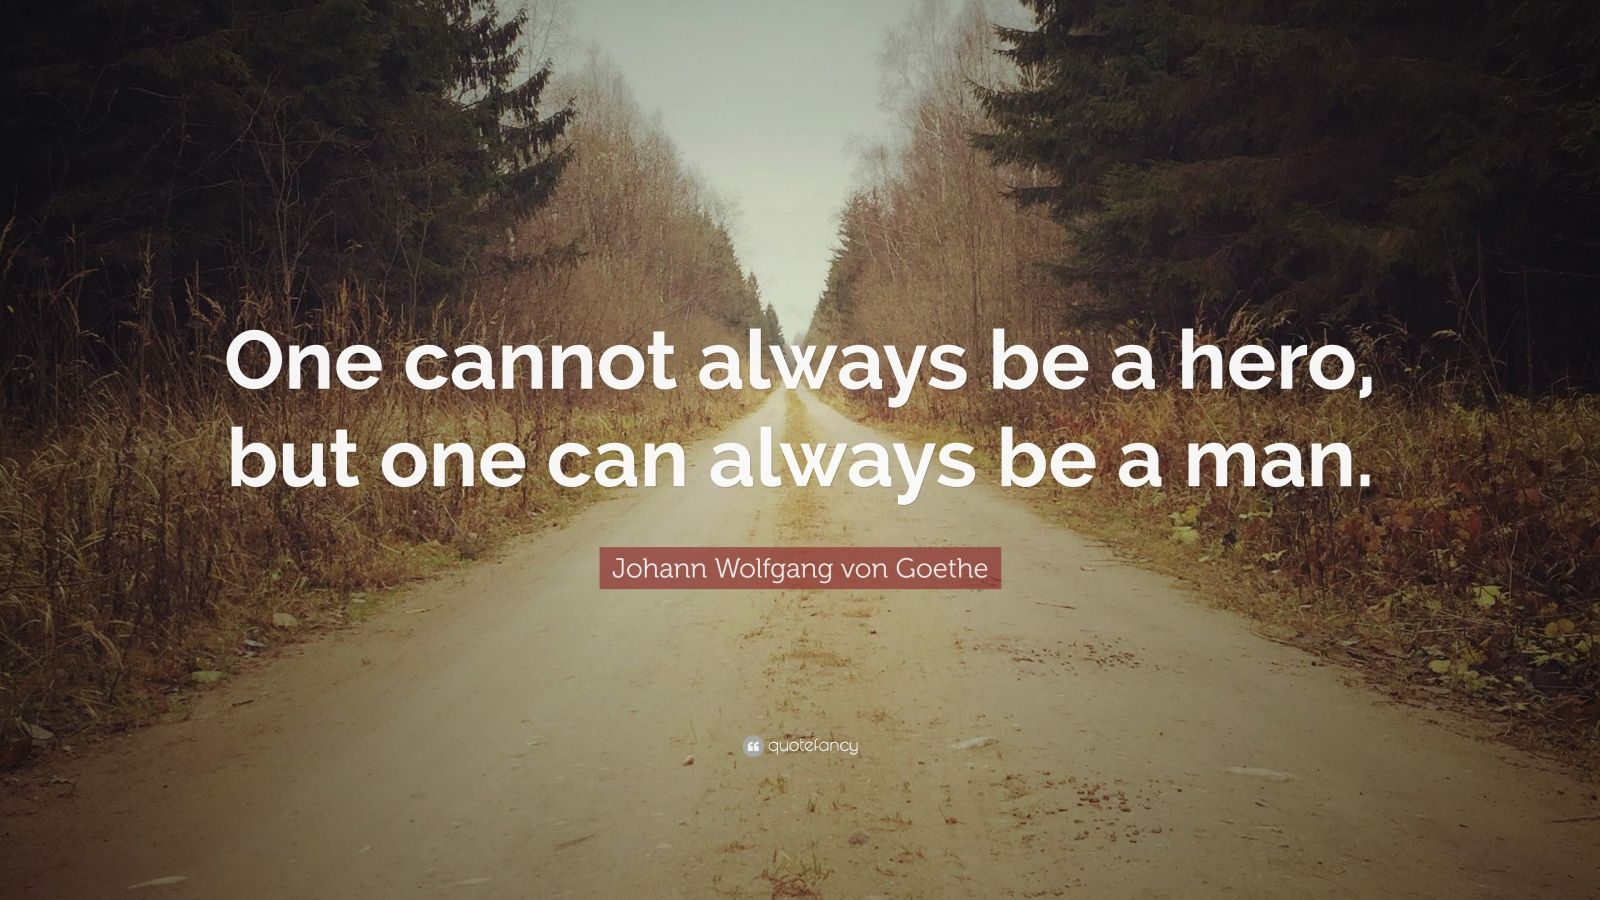 """Johann Wolfgang von Goethe Quote: """"One cannot always be a hero, but one can always be a man."""""""